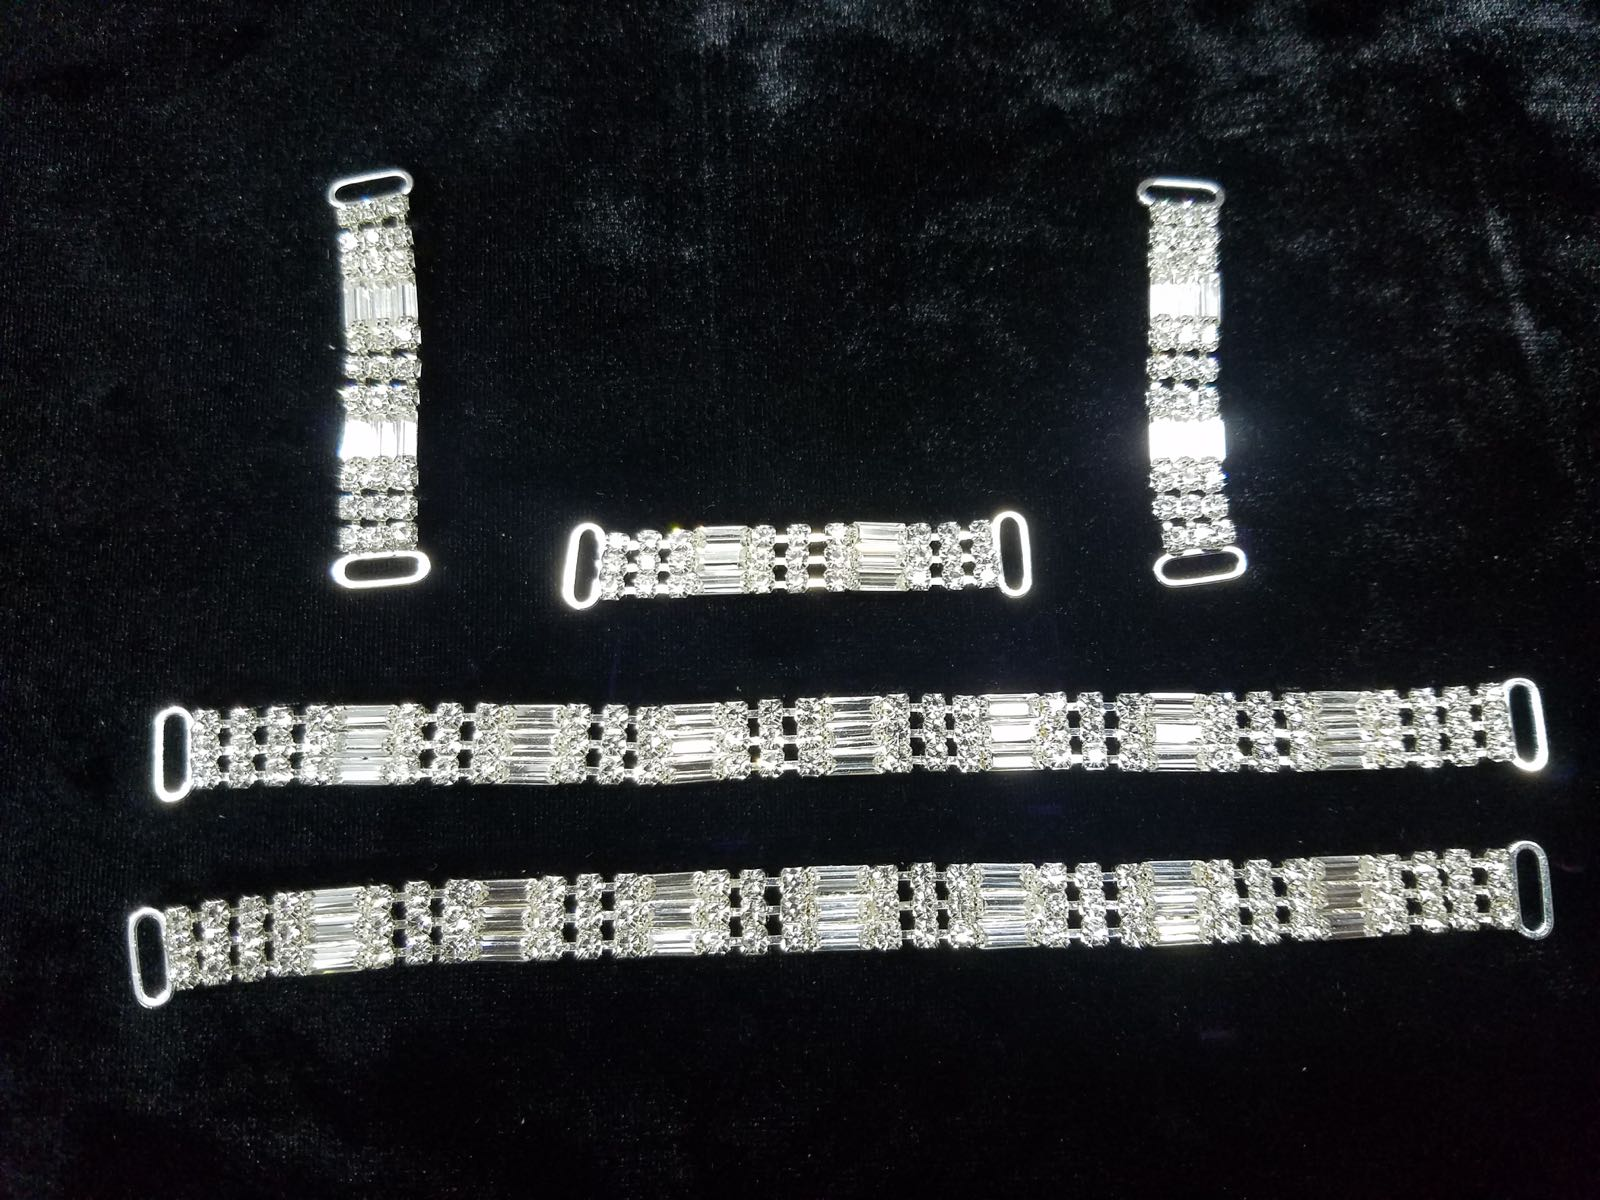 Set G, Silver with clear crystals, $85.00